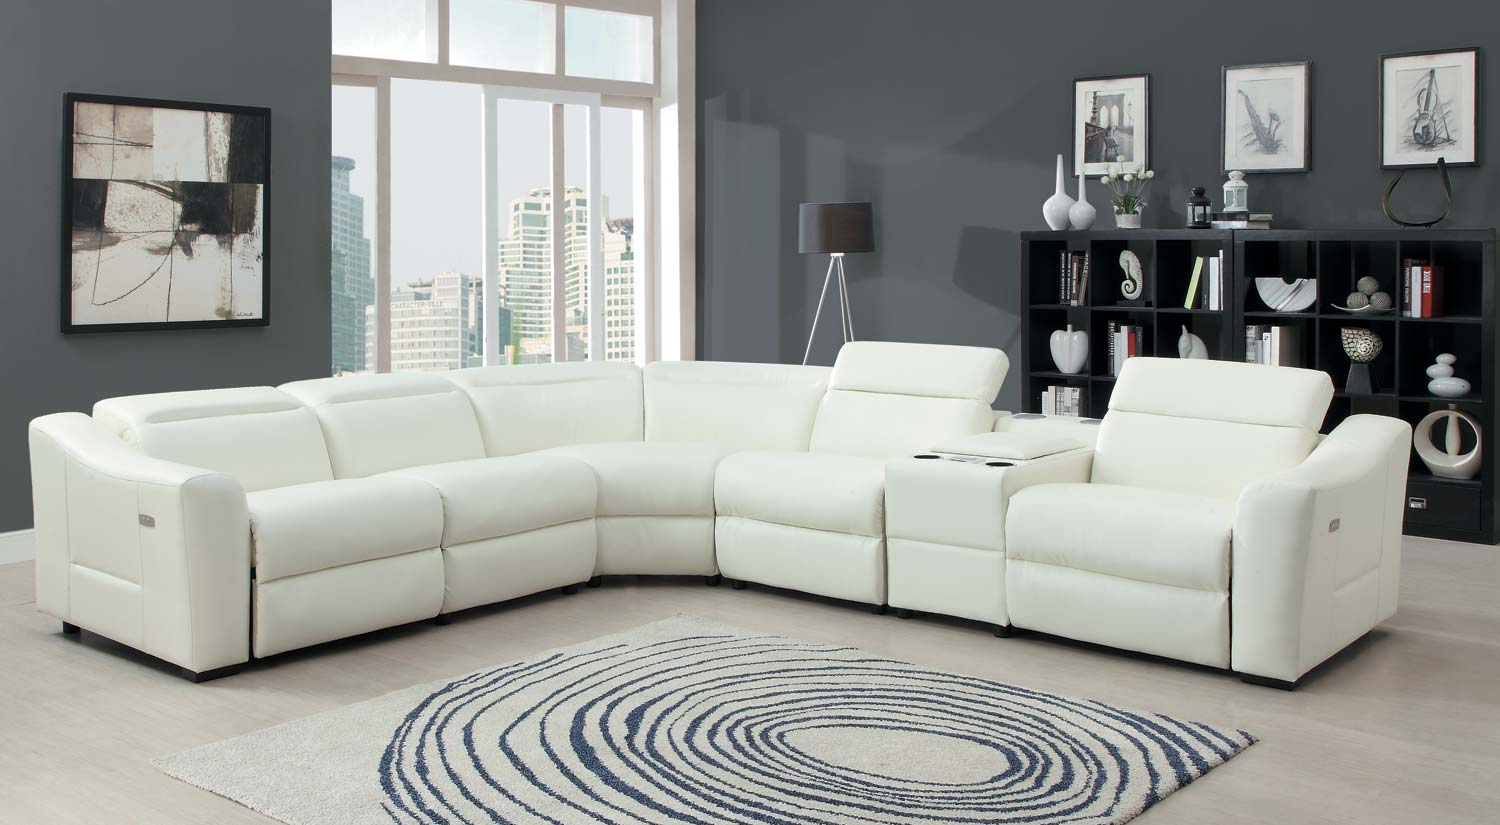 Homelegance Instrumental Sectional Sofa Set White